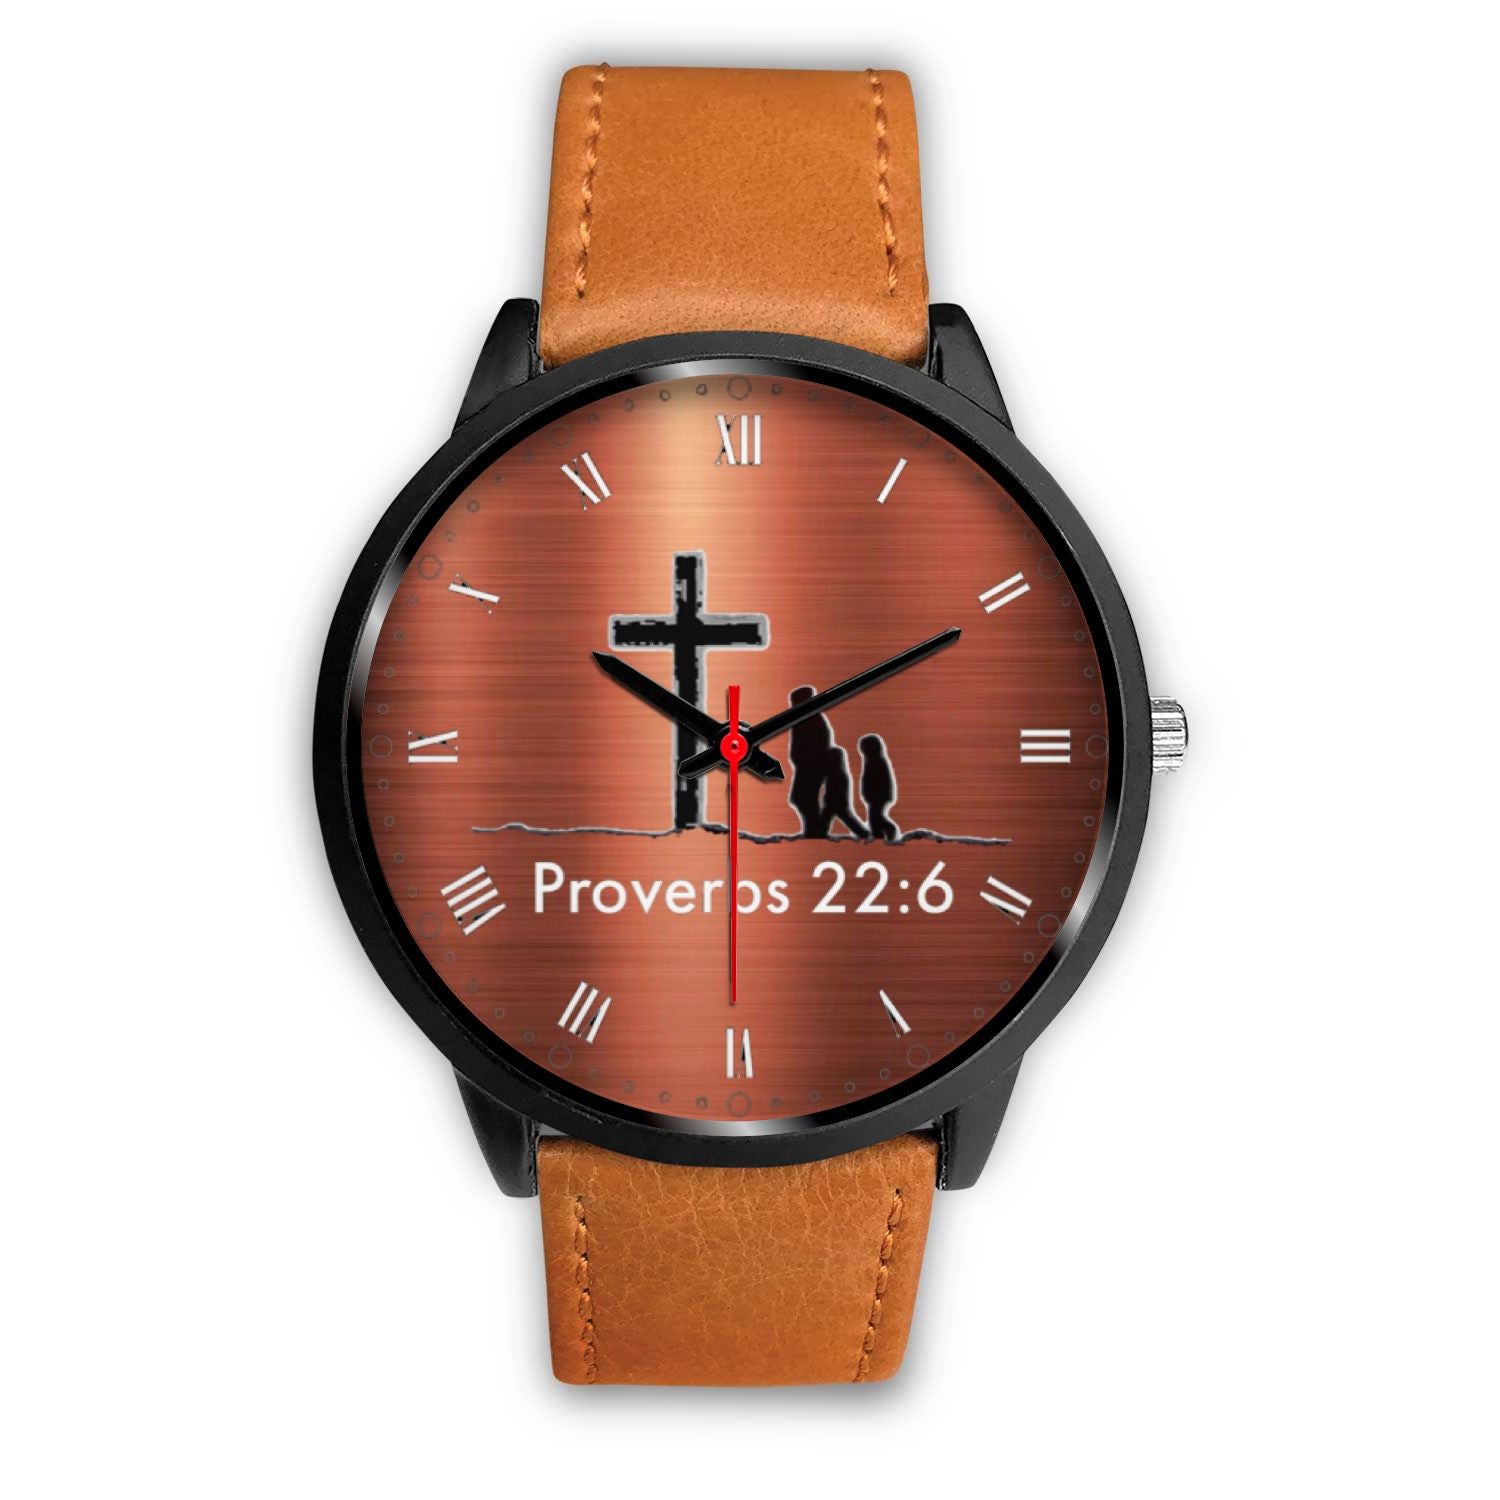 Proverbs 22:6 Watch (Cooper Colored Face)